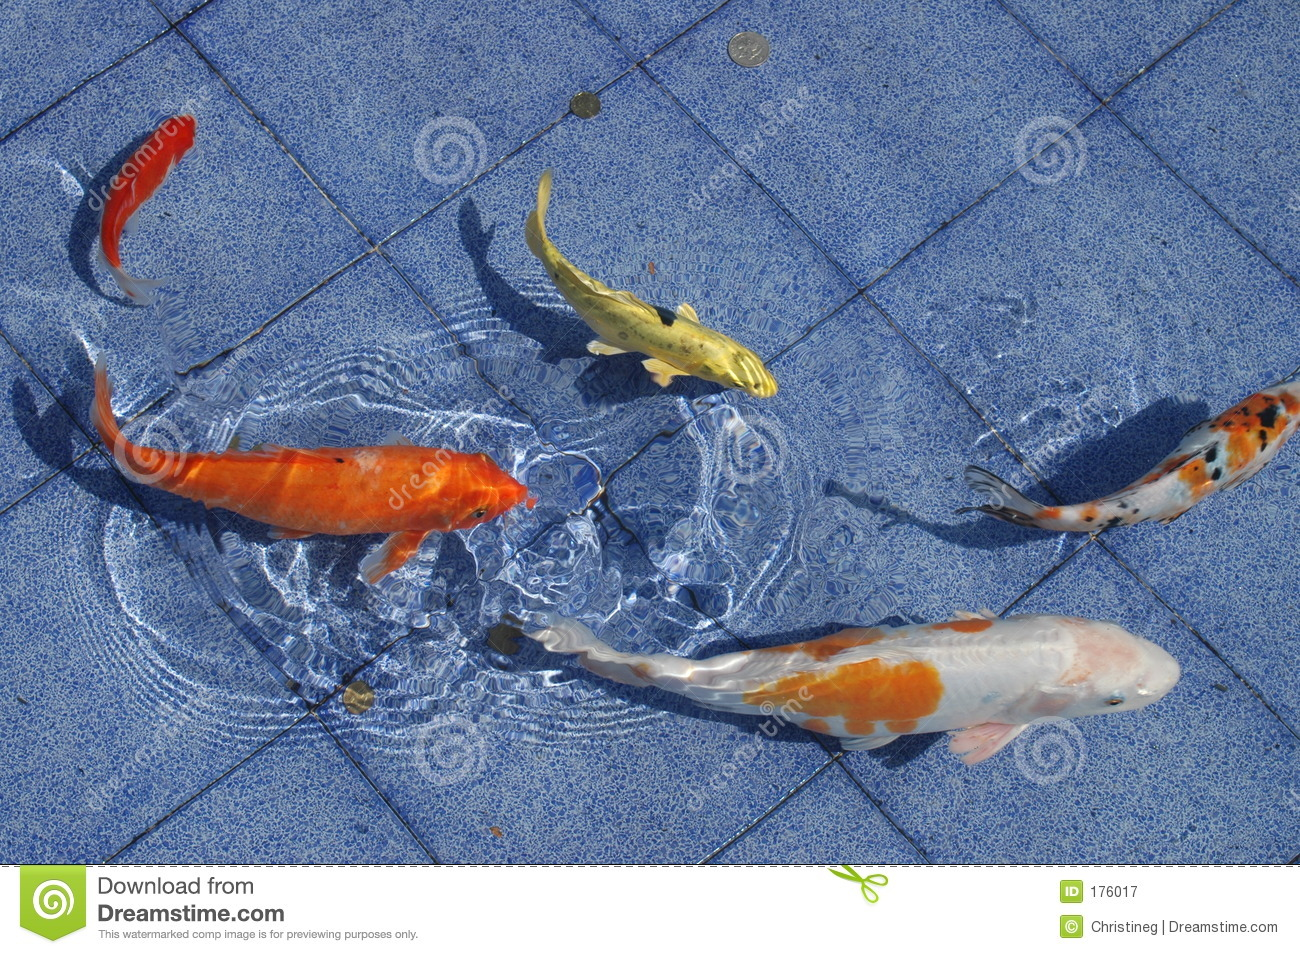 Koi fish in a blue pool stock image image of pets marine for Real blue koi fish